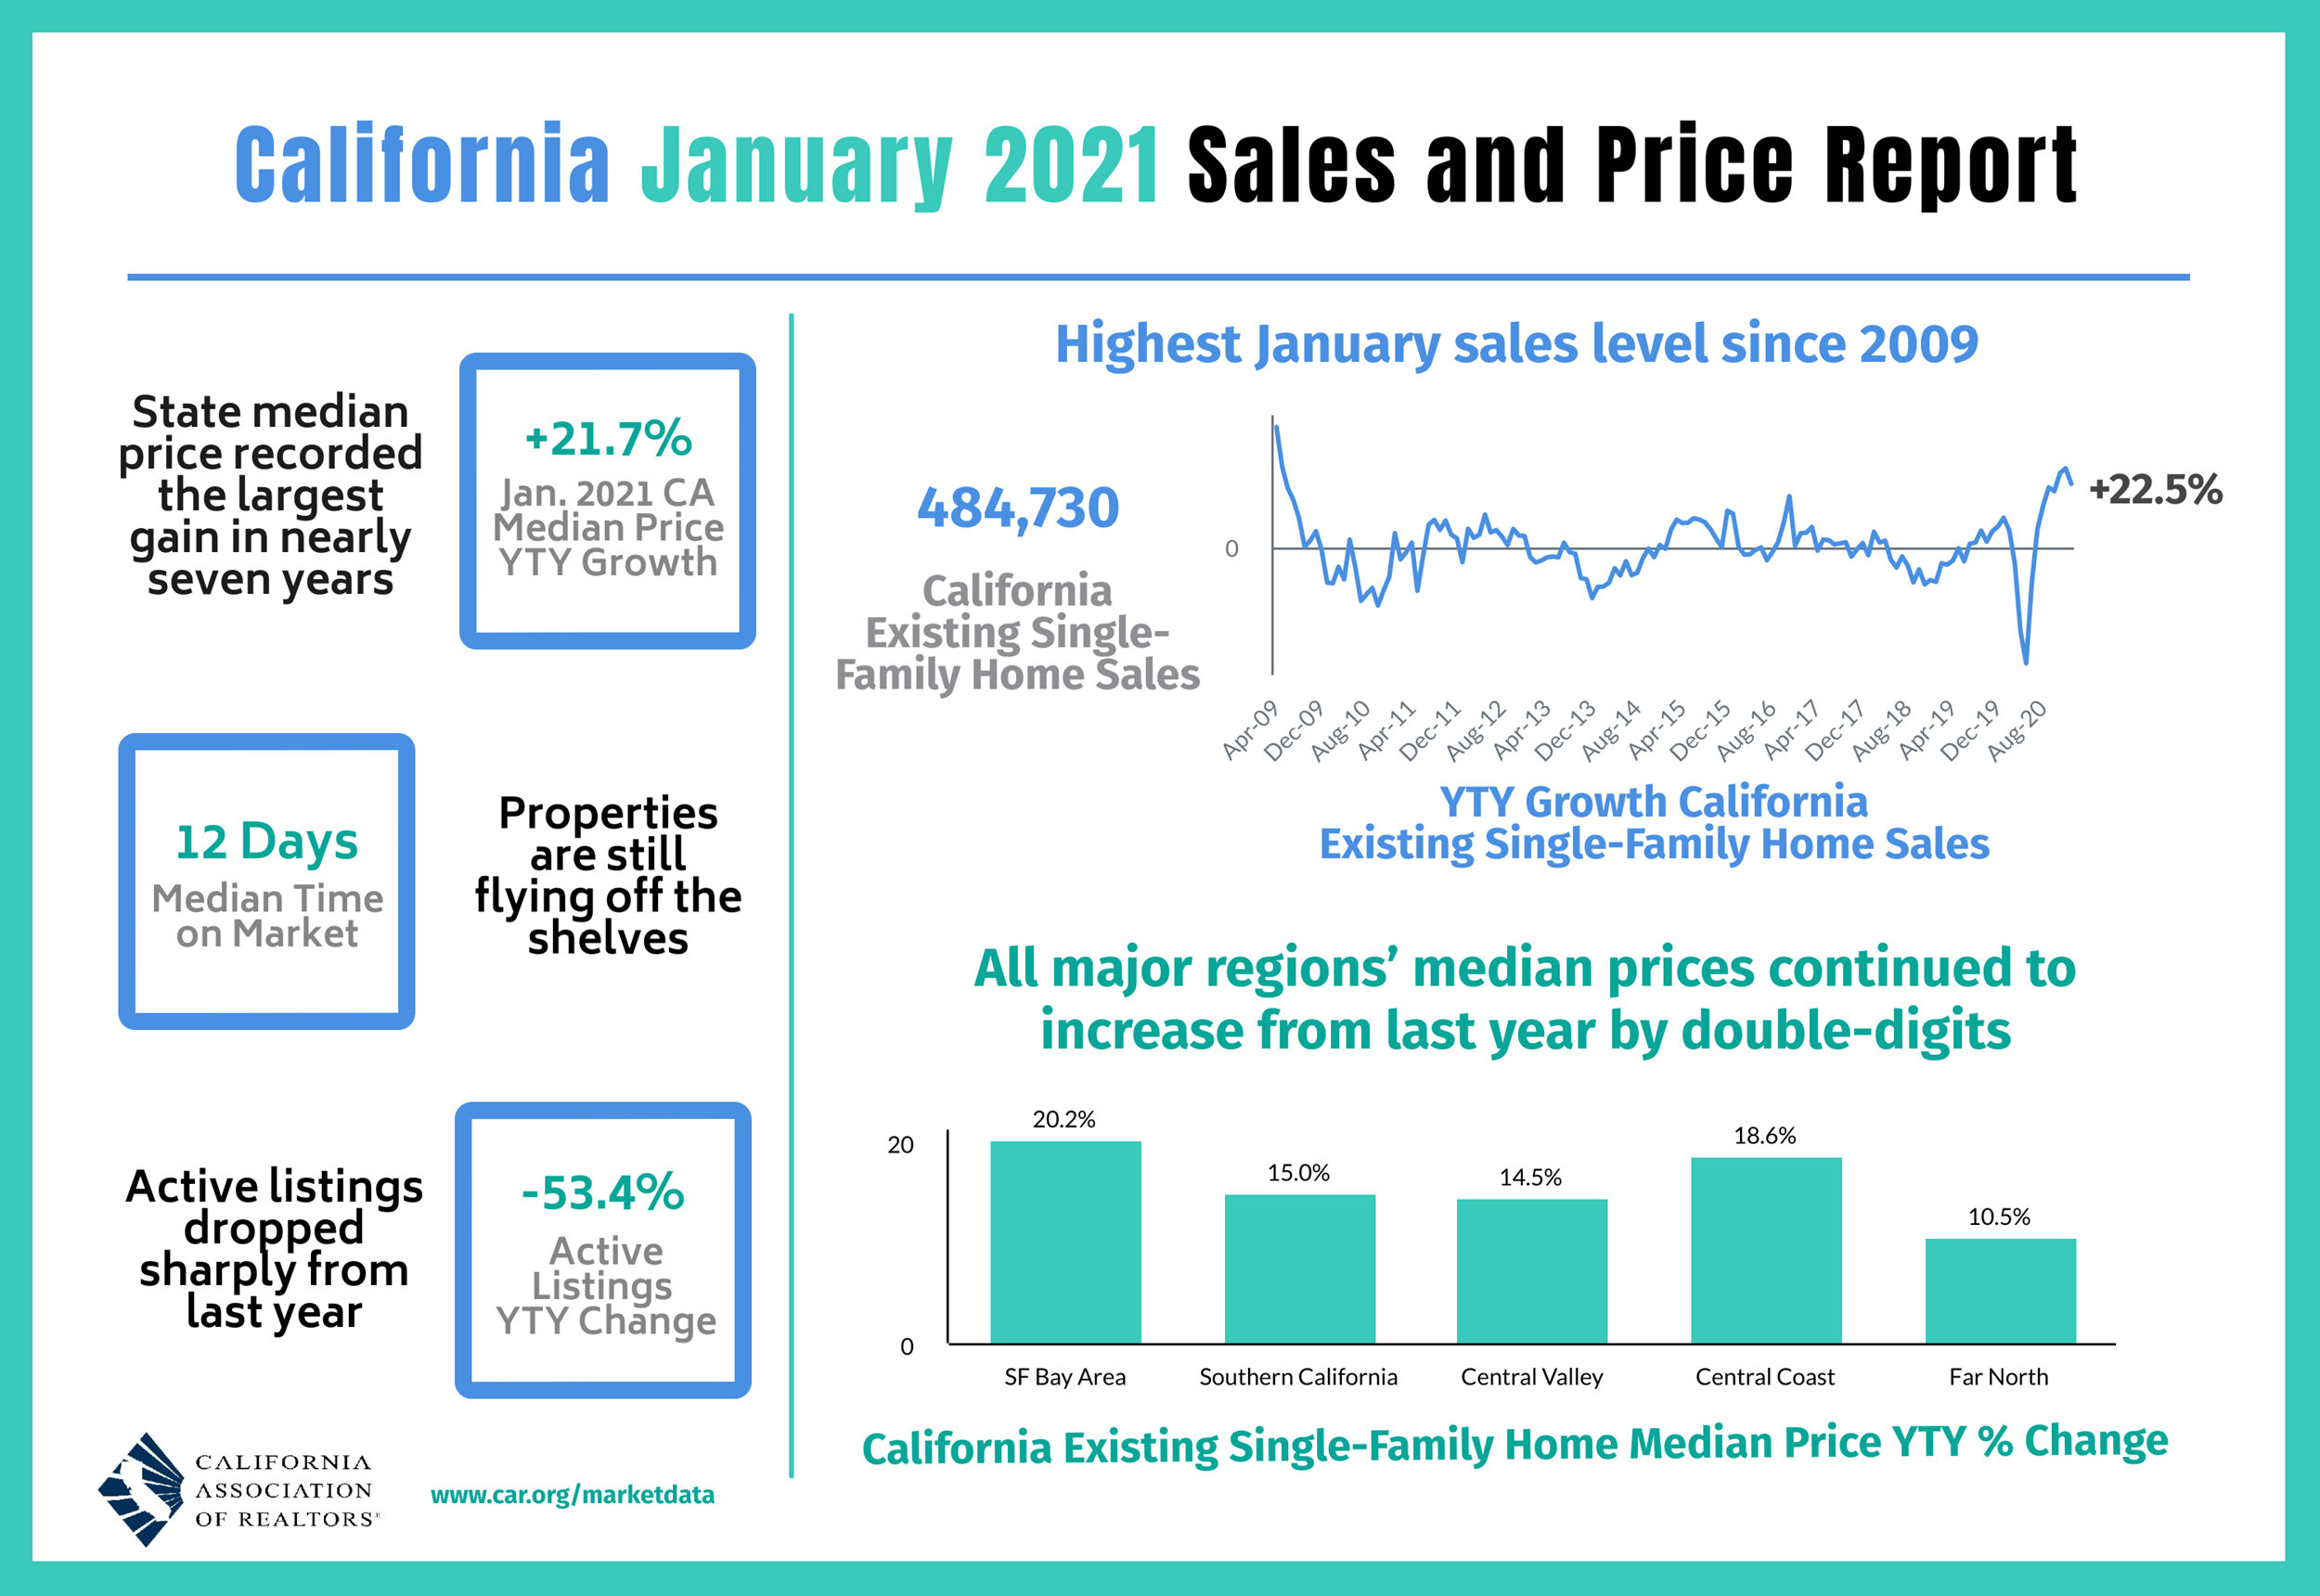 https://www.worldpropertyjournal.com/news-assets/Calfornia-Real-Estate-Sales-and-Price-Report.jpg